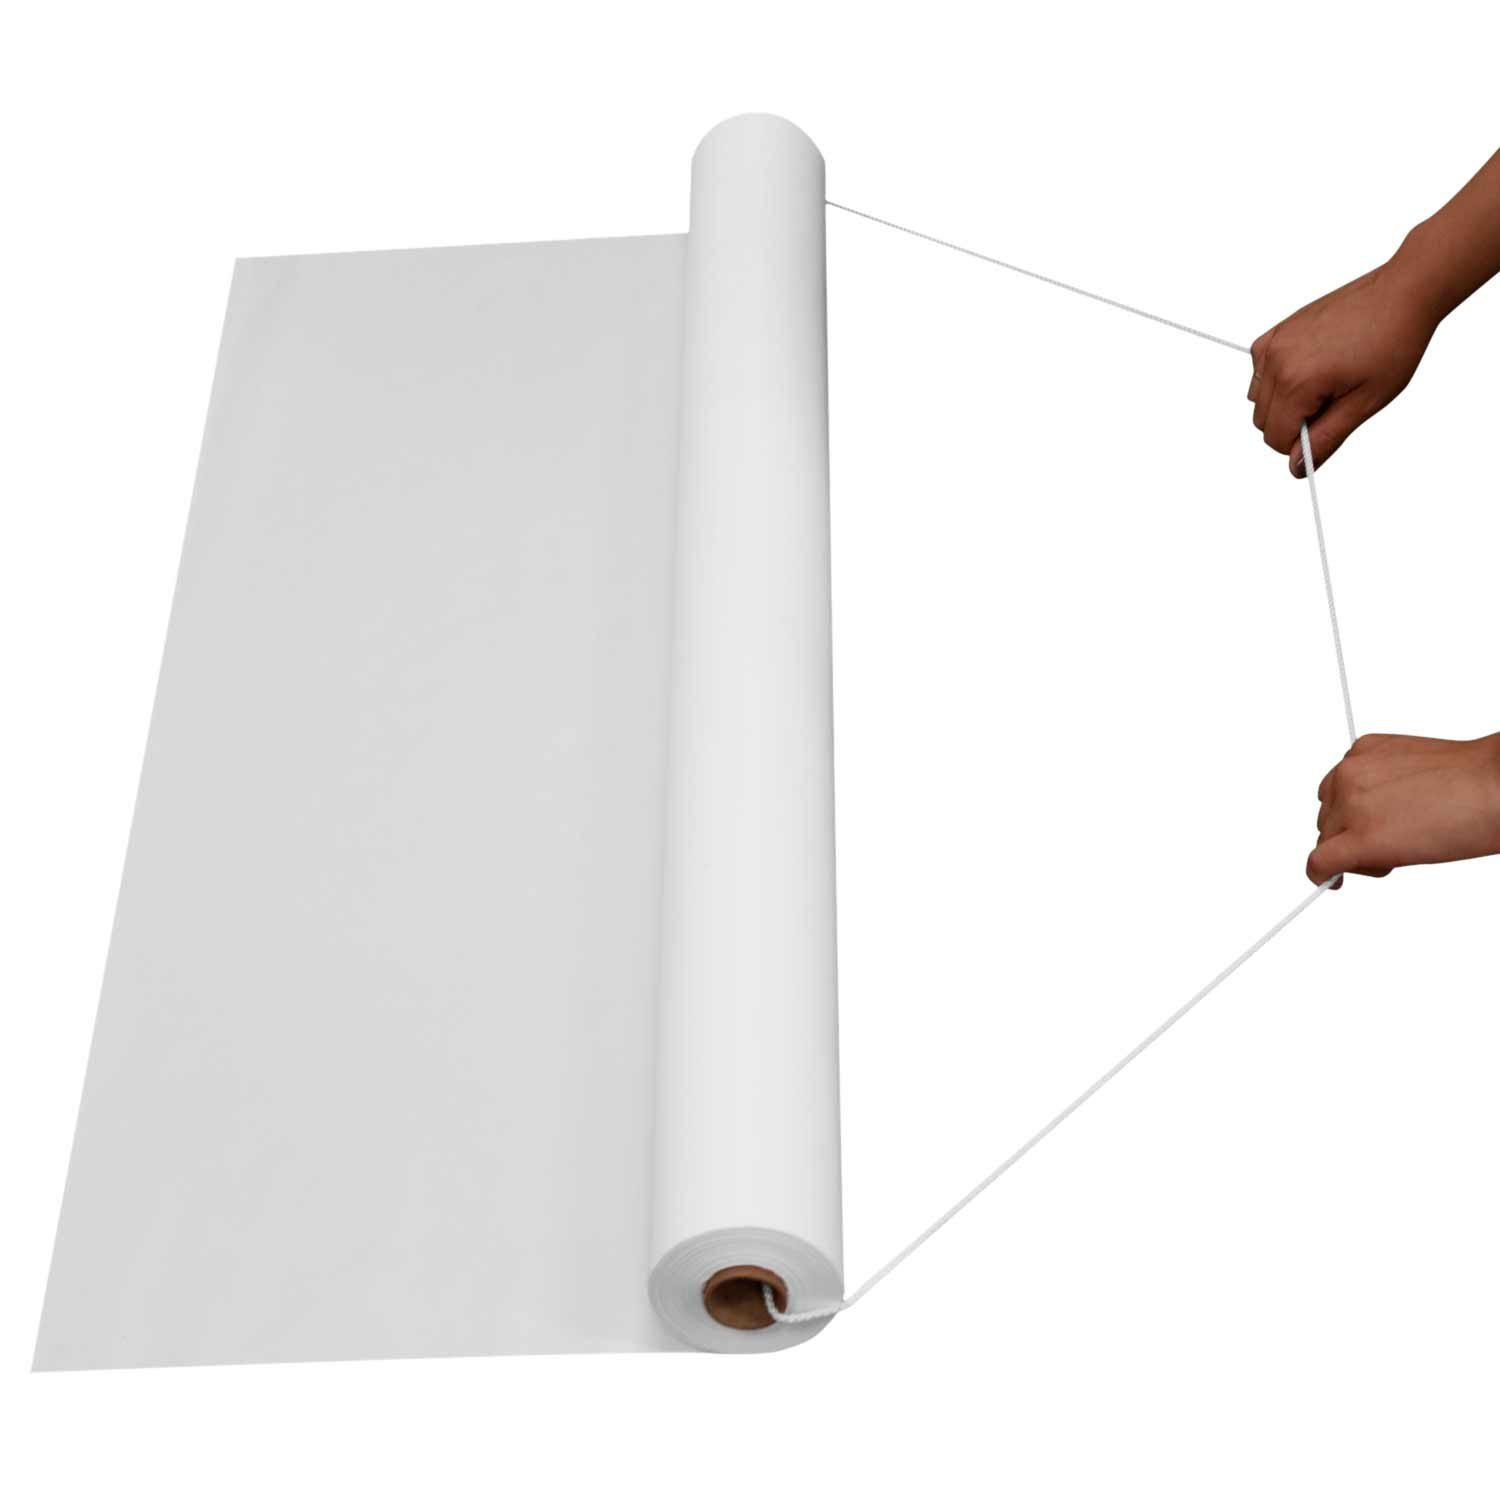 Party Essentials AR150 Plastic Aisle Runners, 150-Feet Length by 36-Inch Width, White (Case of 6) by Party Essentials (Image #2)